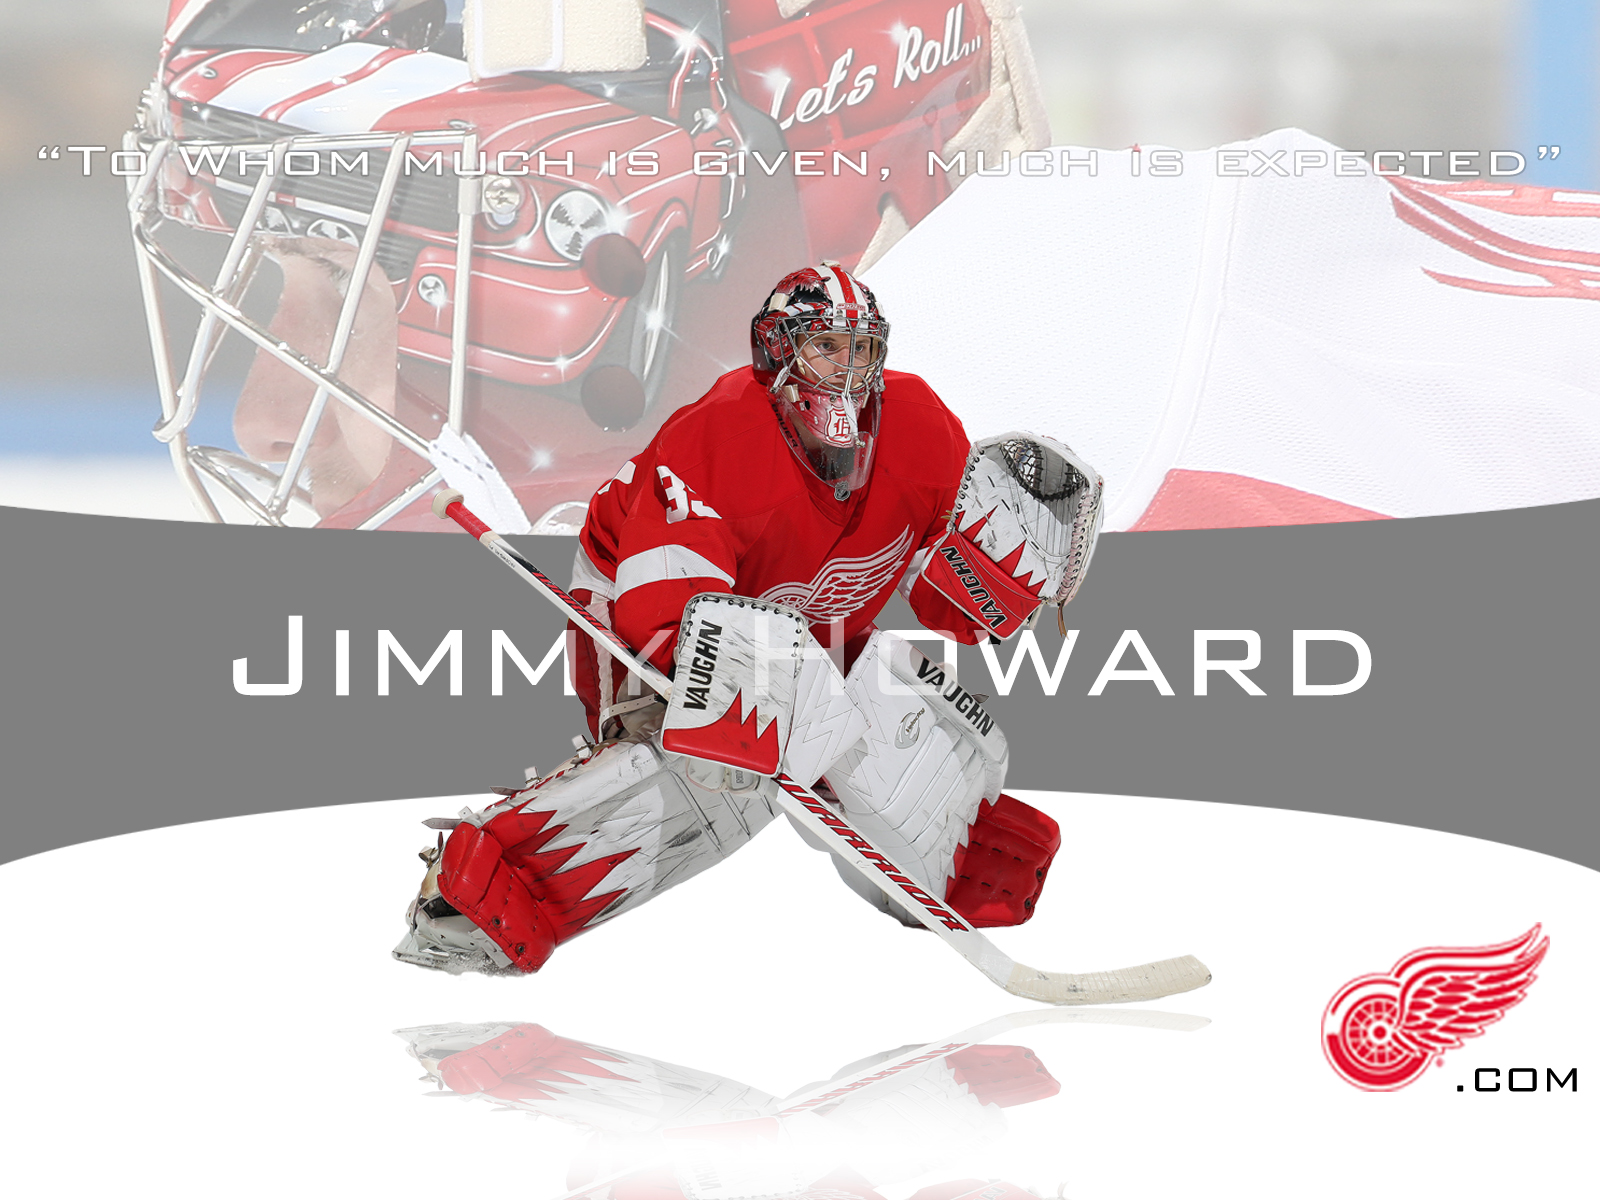 Jimmy Howard Iphone Wallpaper wwwgalleryhipcom   The 1600x1200